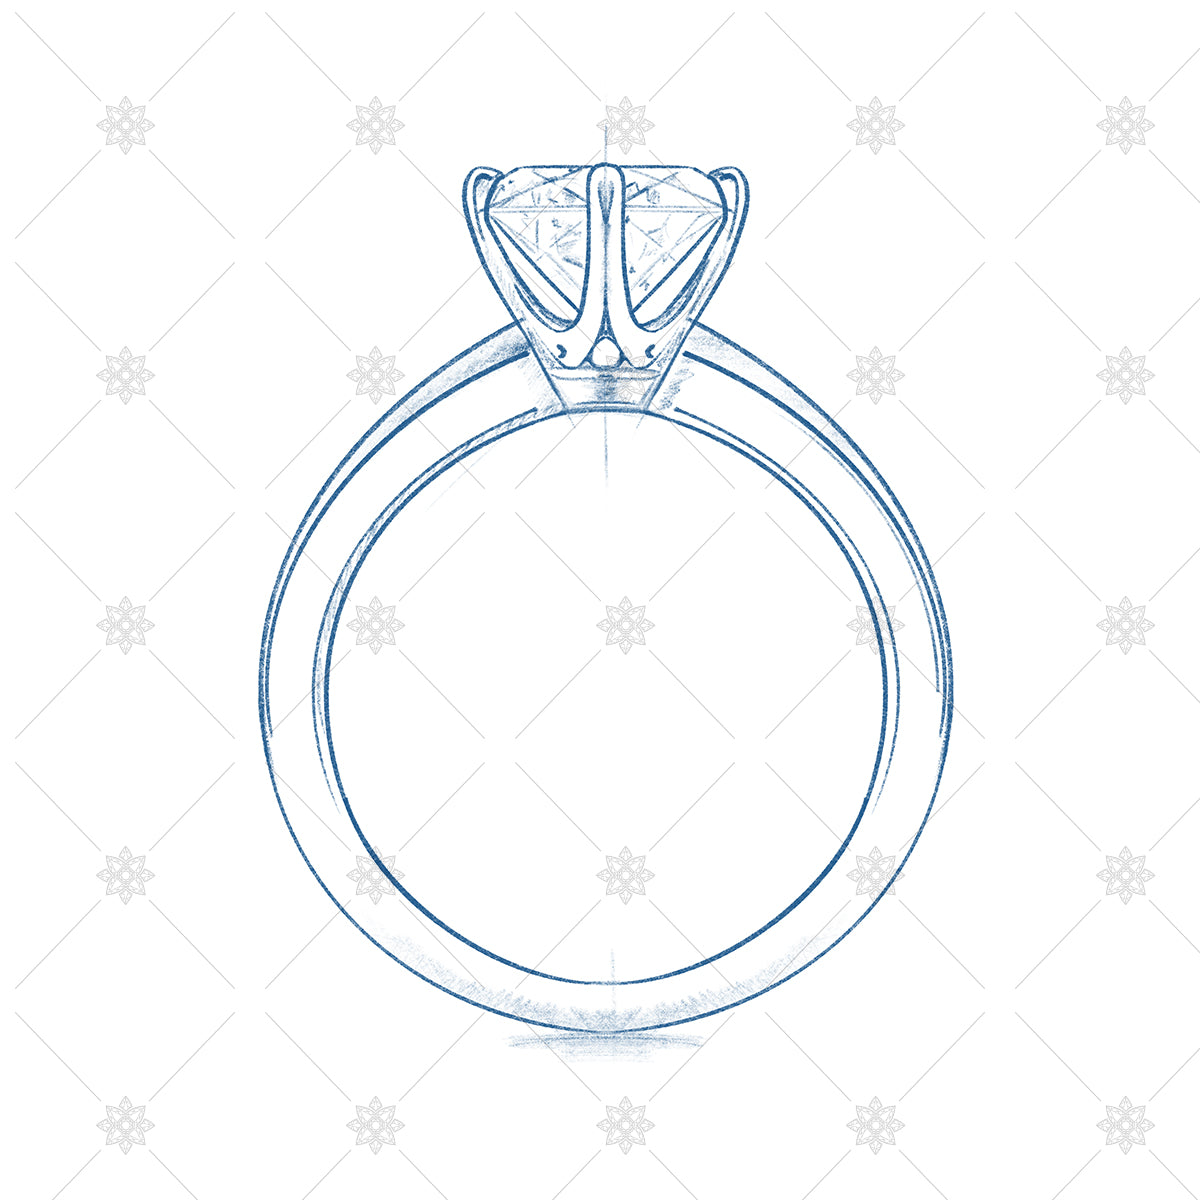 tiffany ring design - drawing and ring sketch